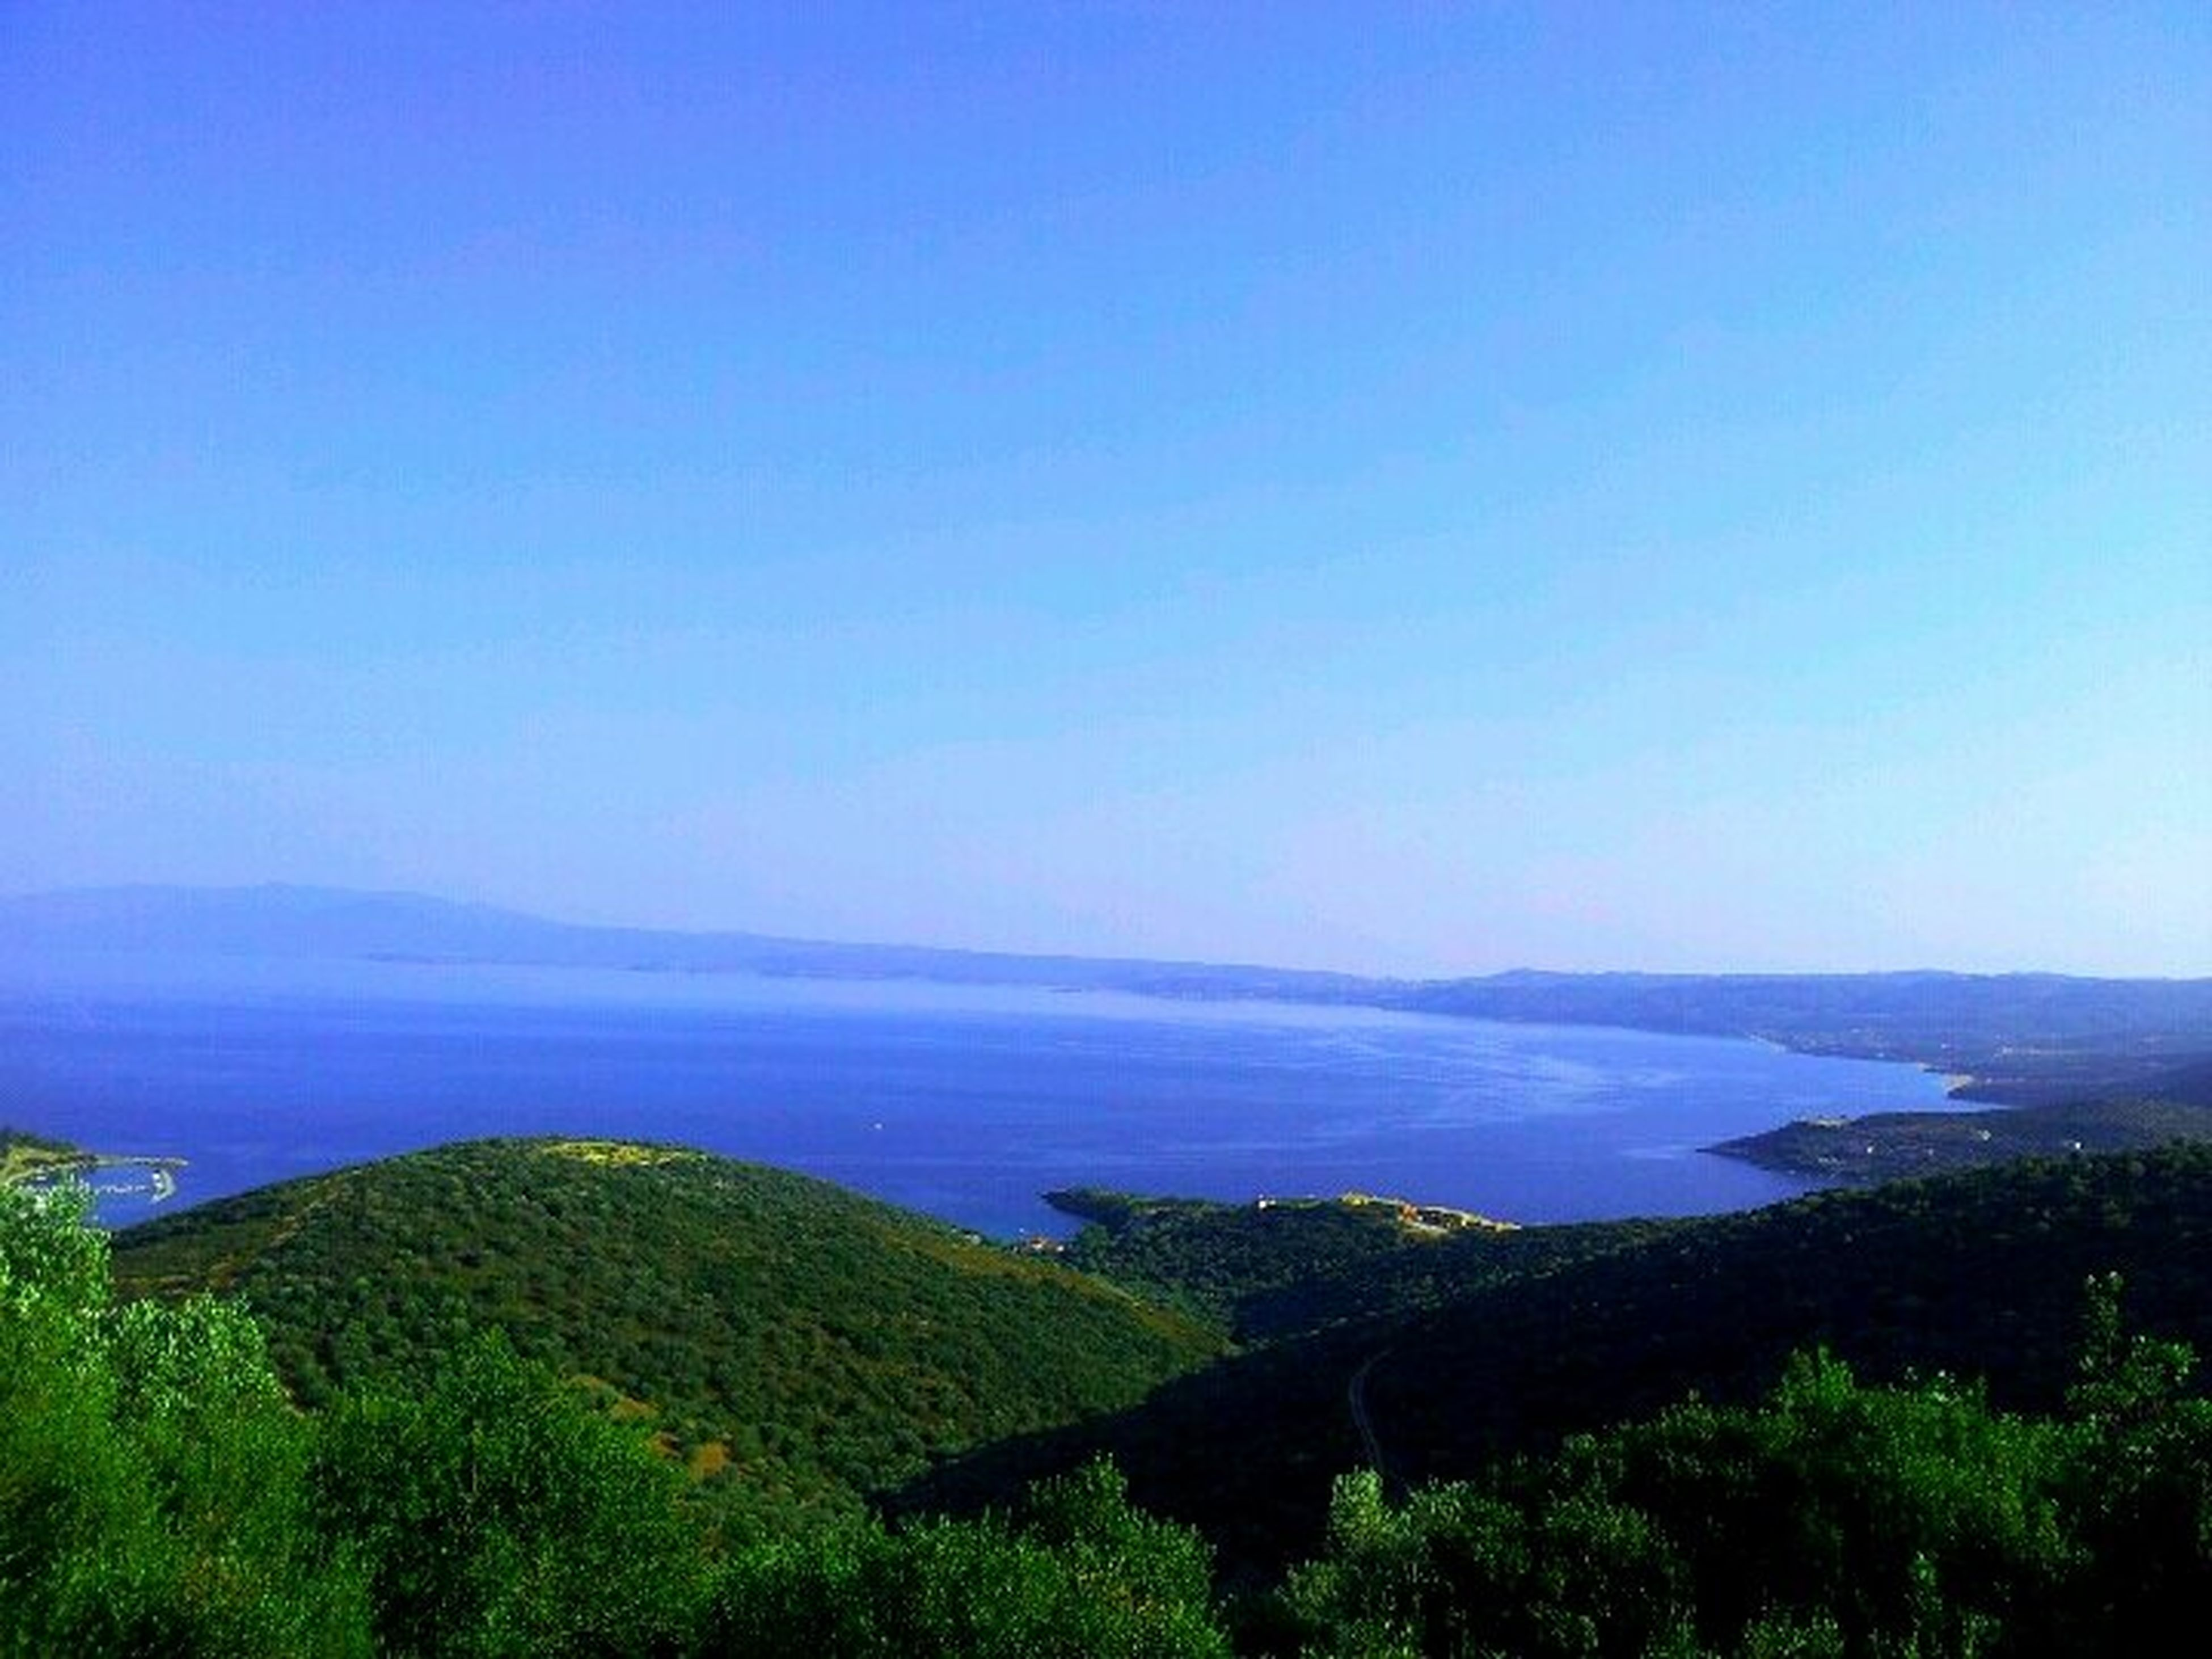 tranquil scene, blue, scenics, sea, tranquility, copy space, clear sky, beauty in nature, water, horizon over water, nature, landscape, idyllic, high angle view, mountain, coastline, tree, non-urban scene, grass, sky